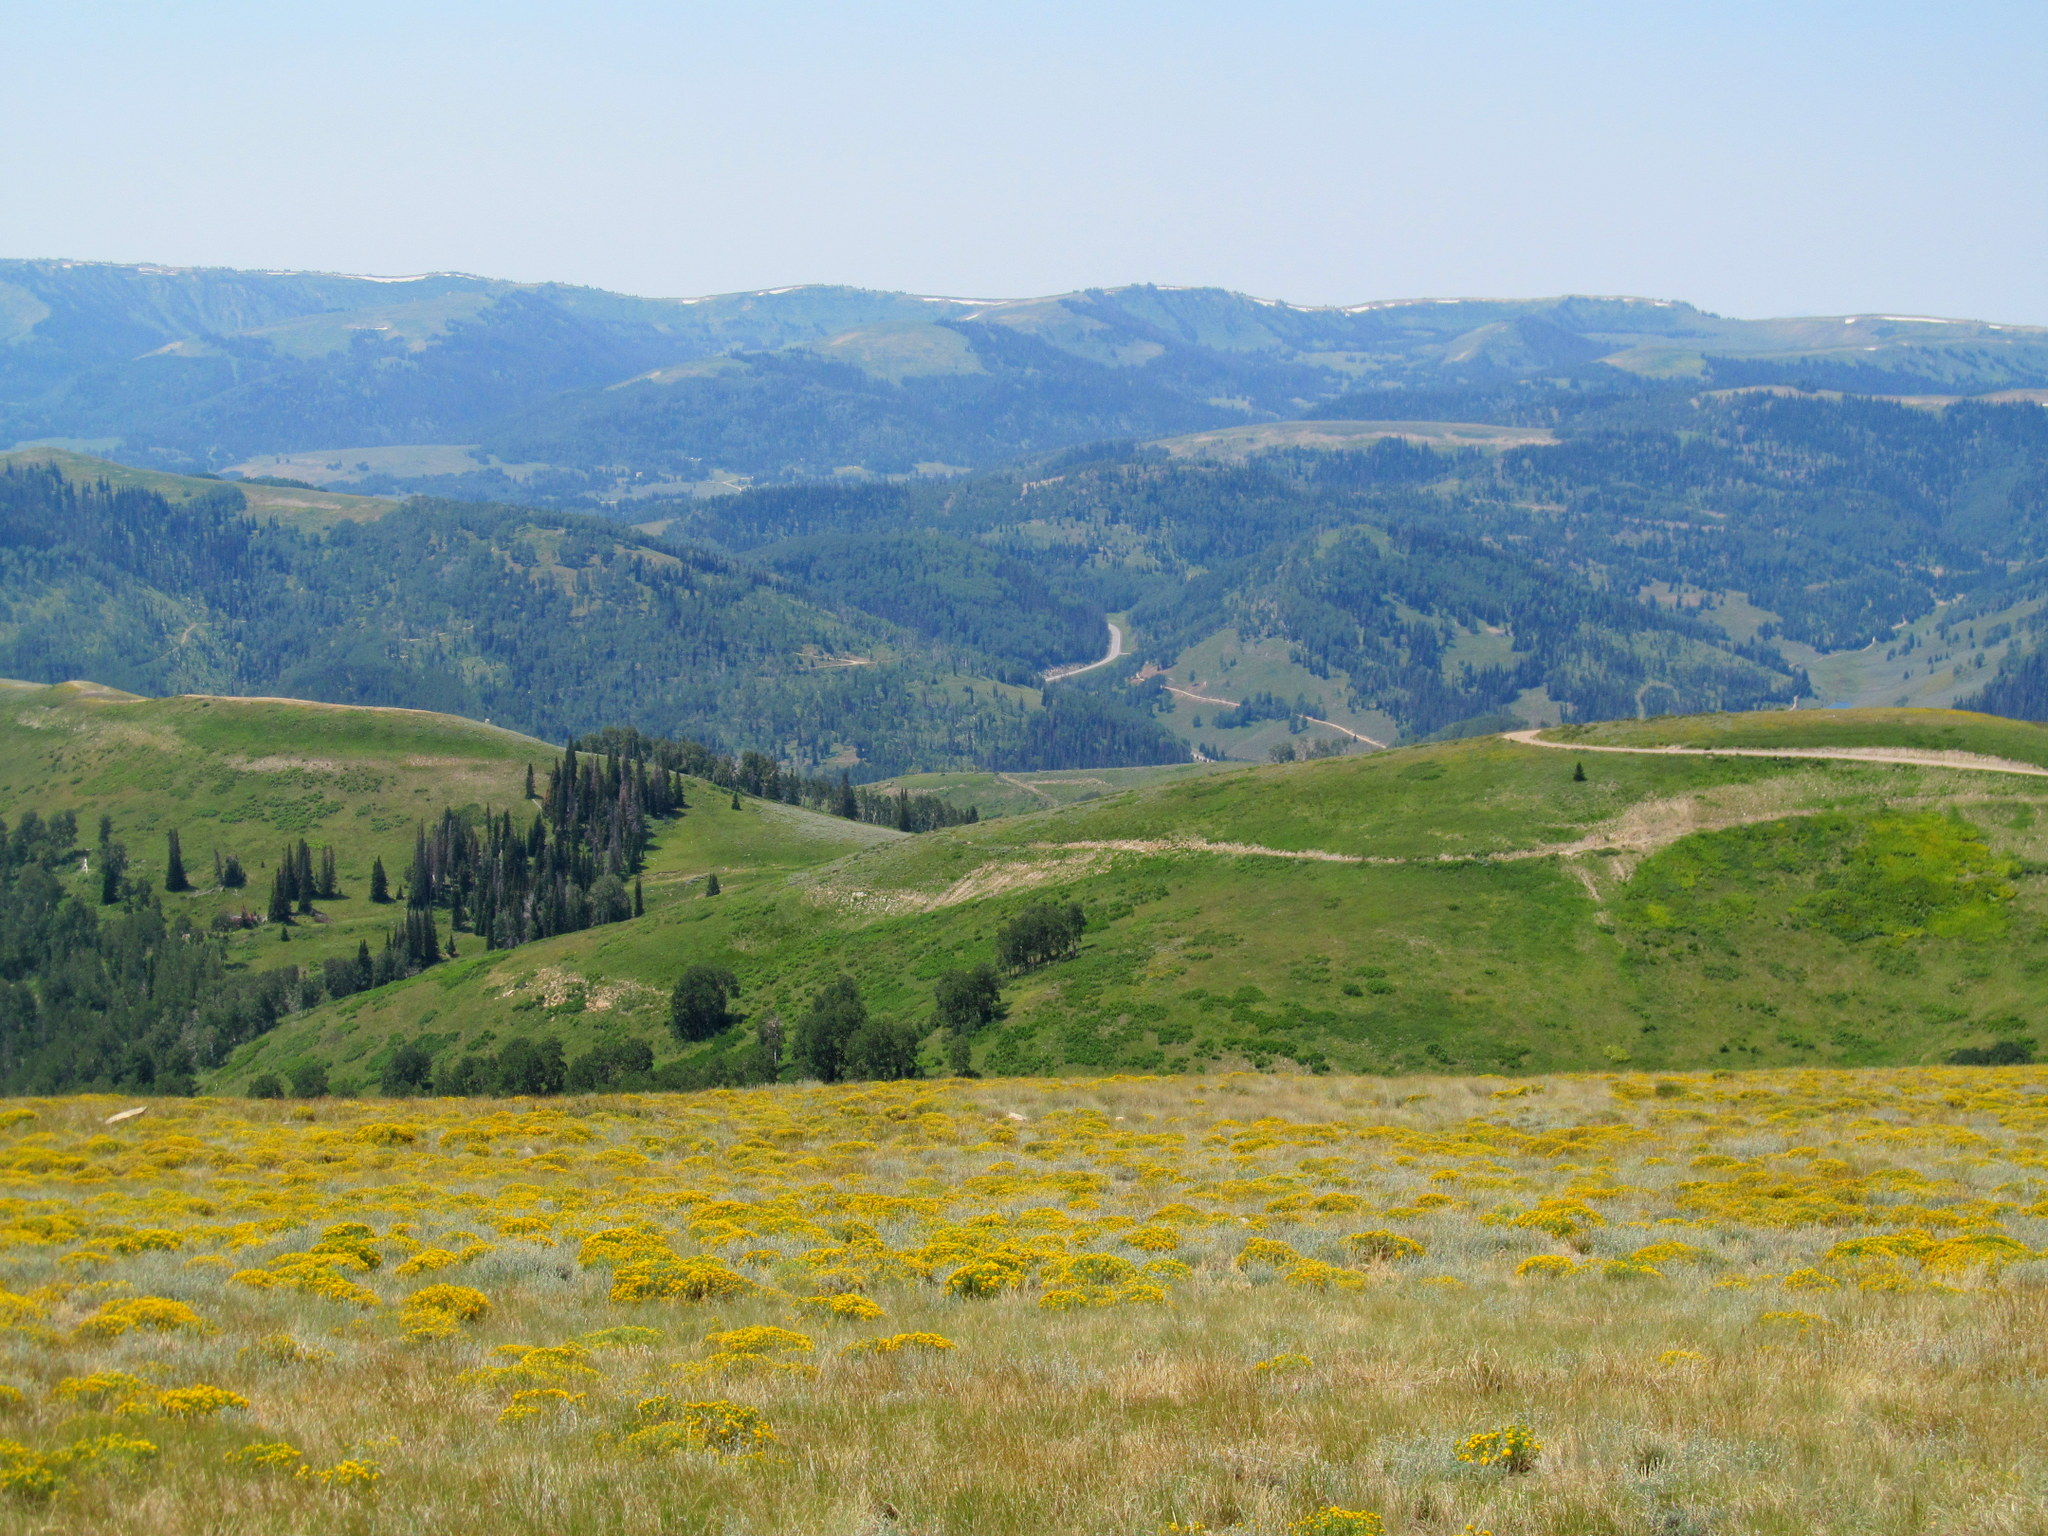 Photo: On the horizon is Skyline Drive, the backbone of the Wasatch Plateau